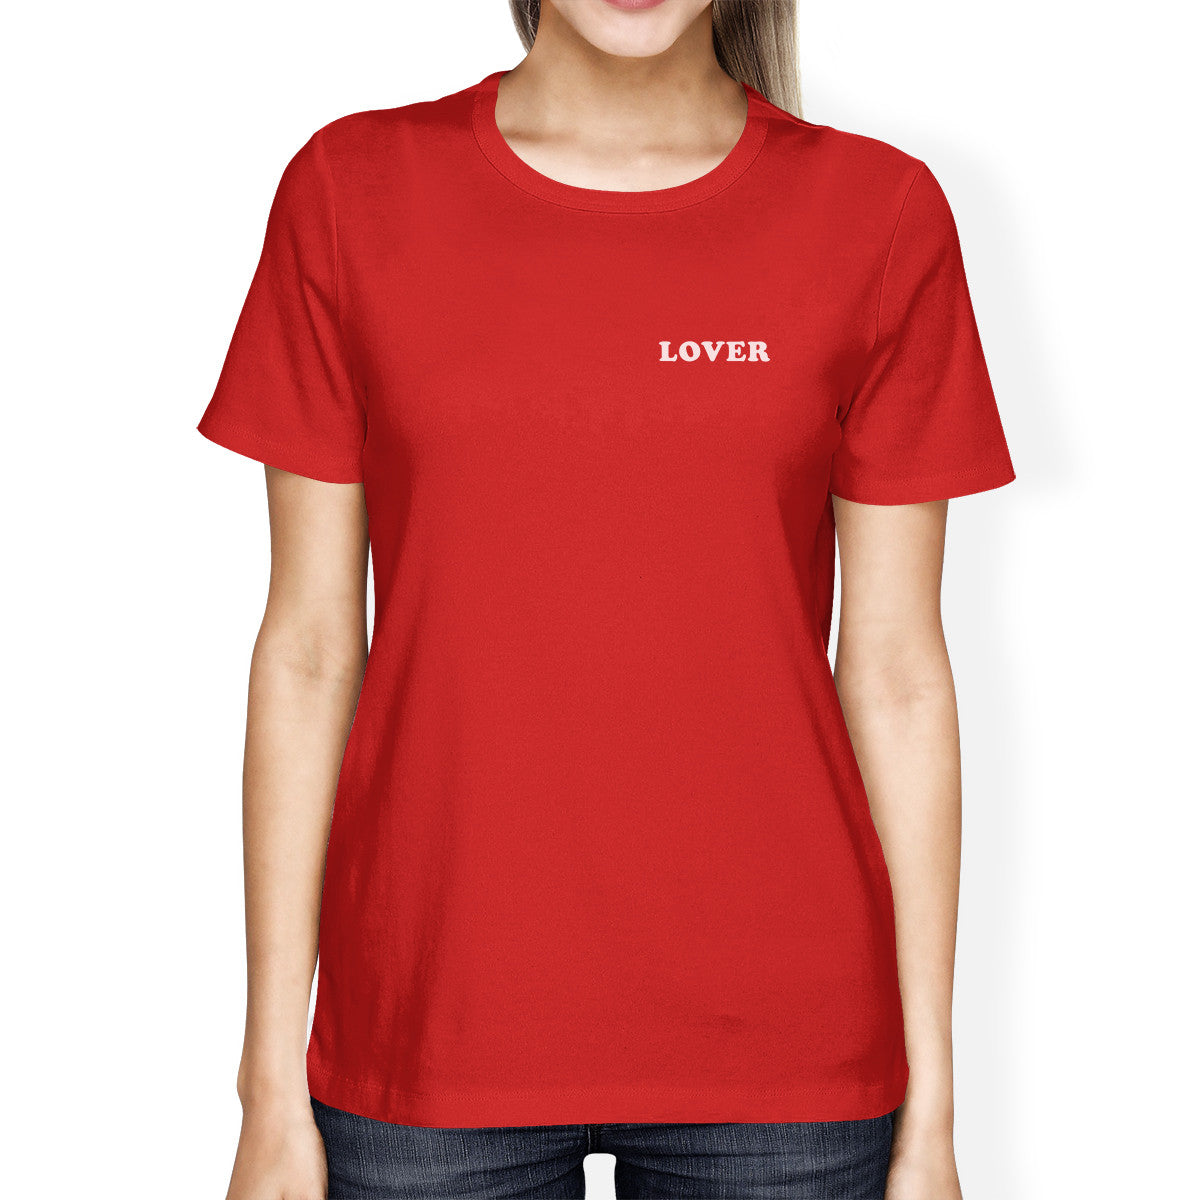 72c92abb1 Lover Women's Red T-shirt Cute Graphic Tee Gift Ideas For Birthdays ...